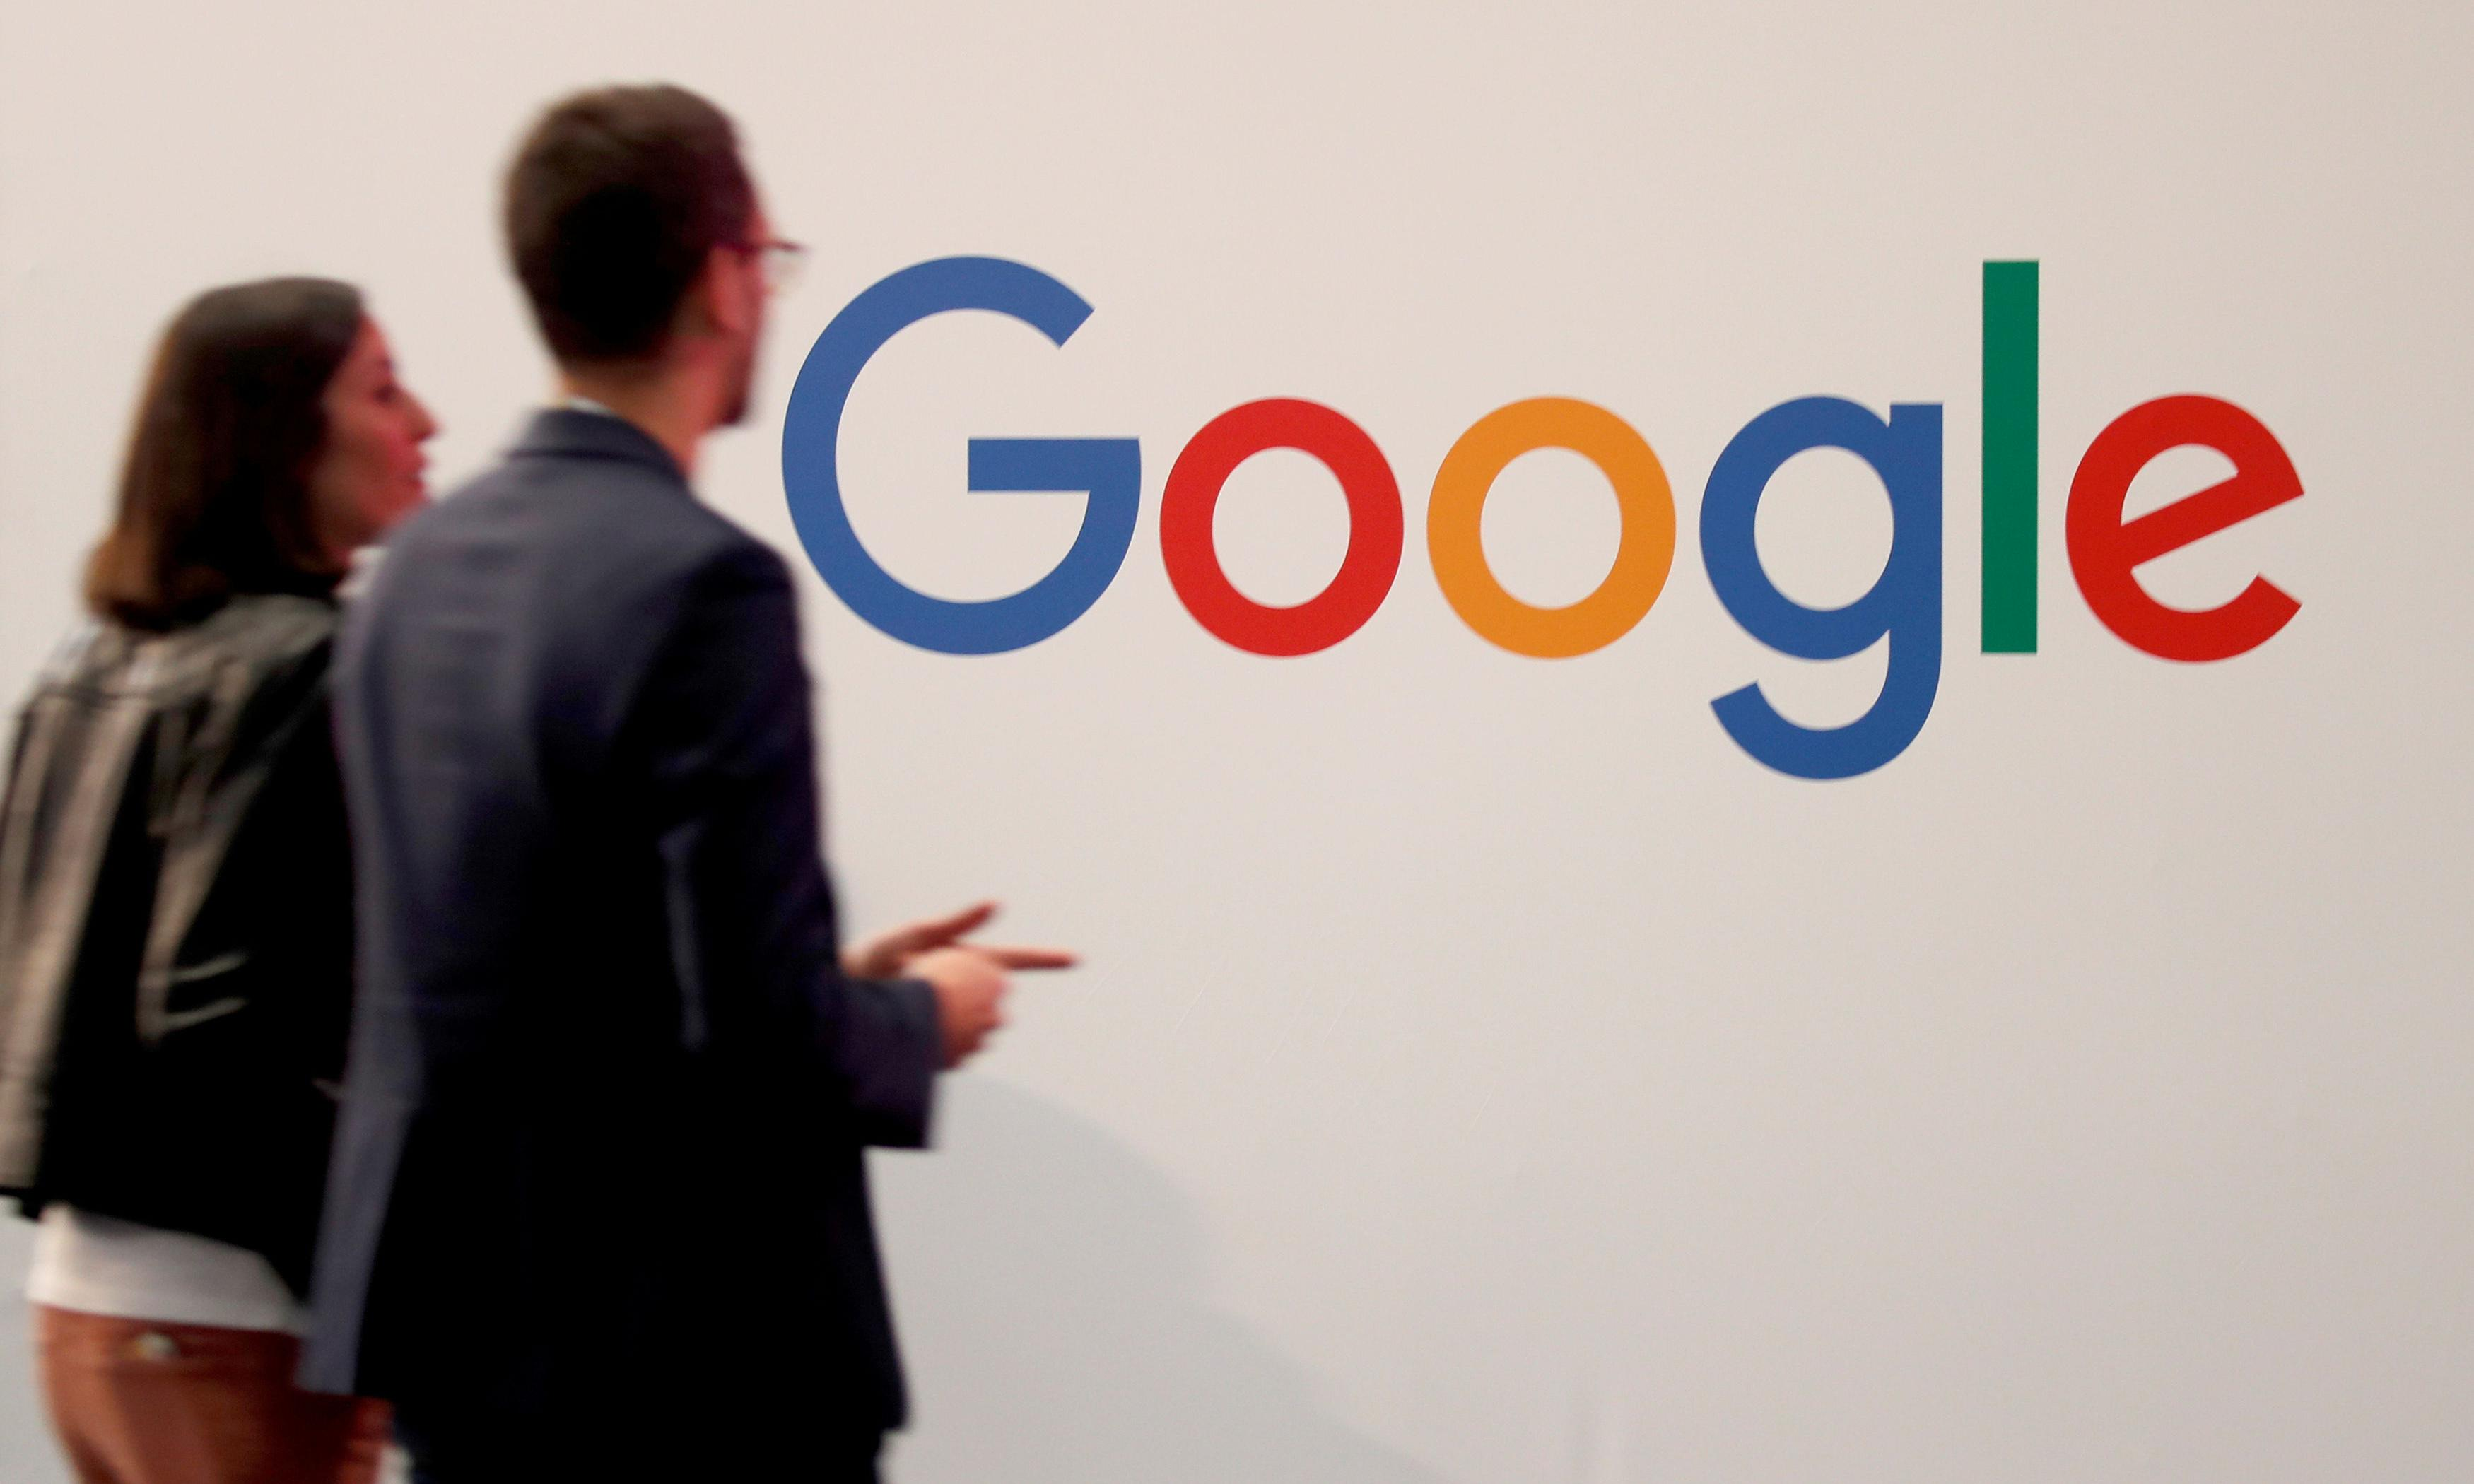 EU to investigate Google over data collection practices